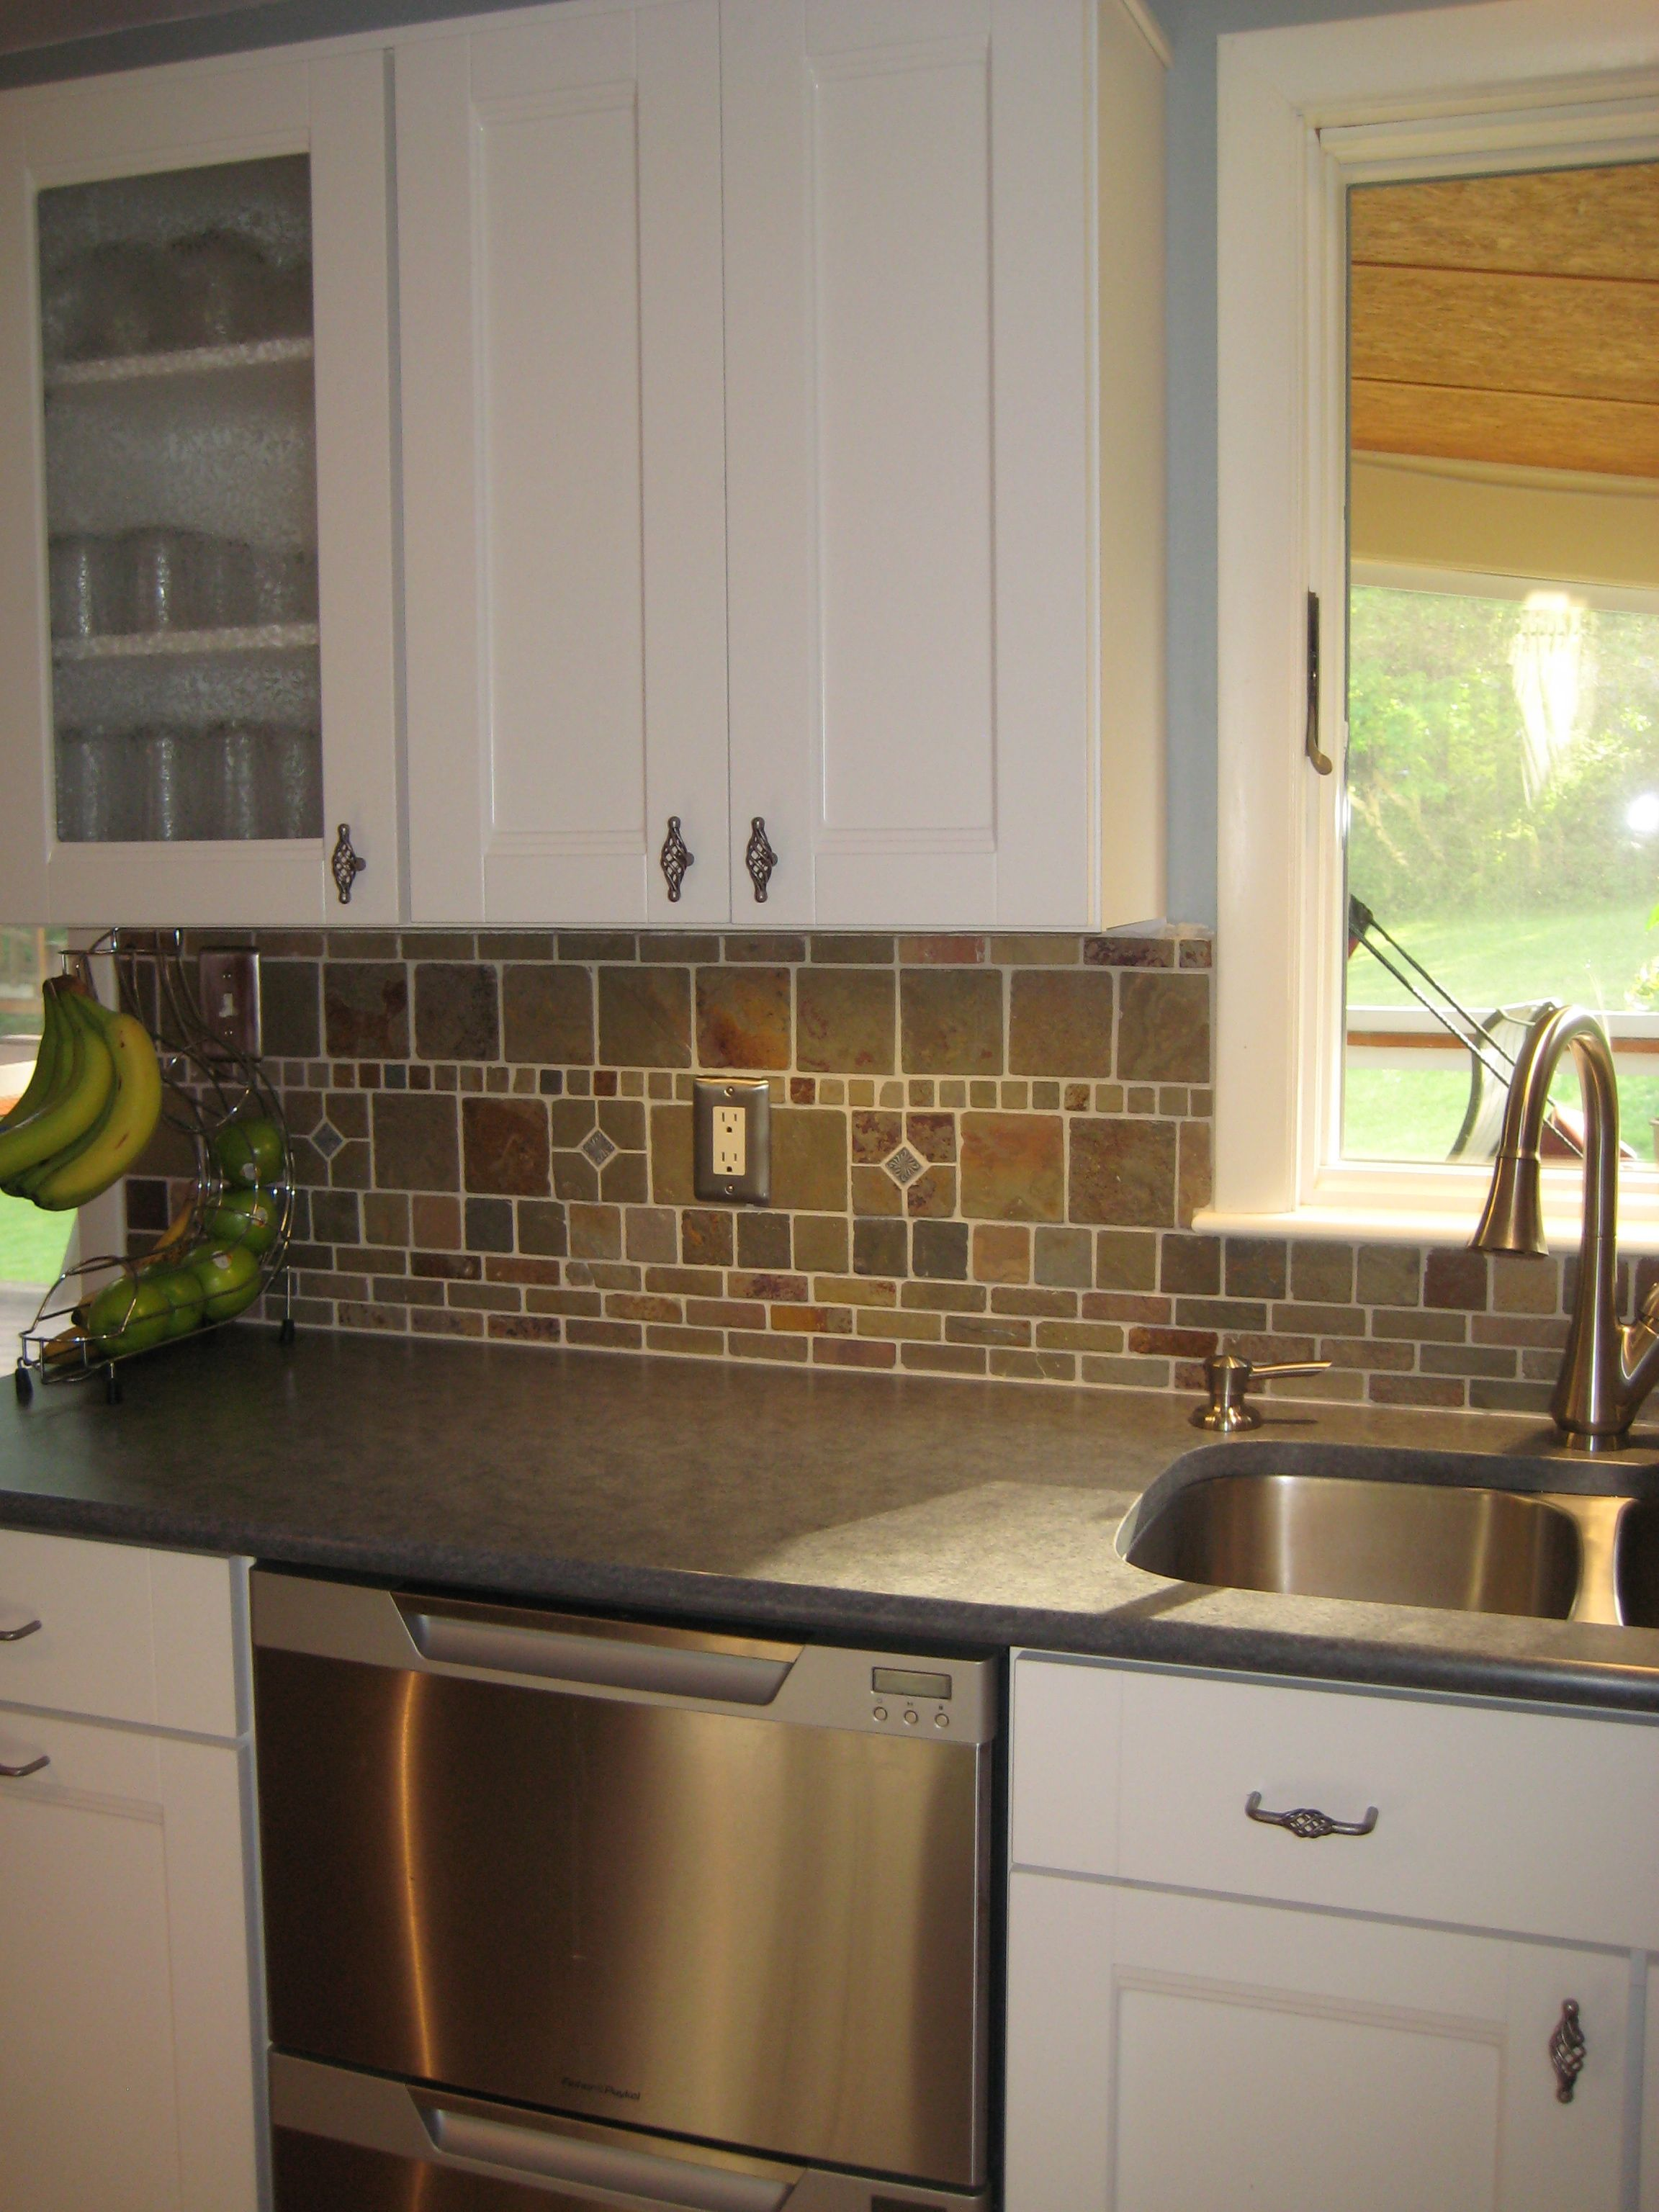 Backsplash Ideas On Pinterest Backsplash Ideas Kitchen Backsplash And Kitchen Back Splashes